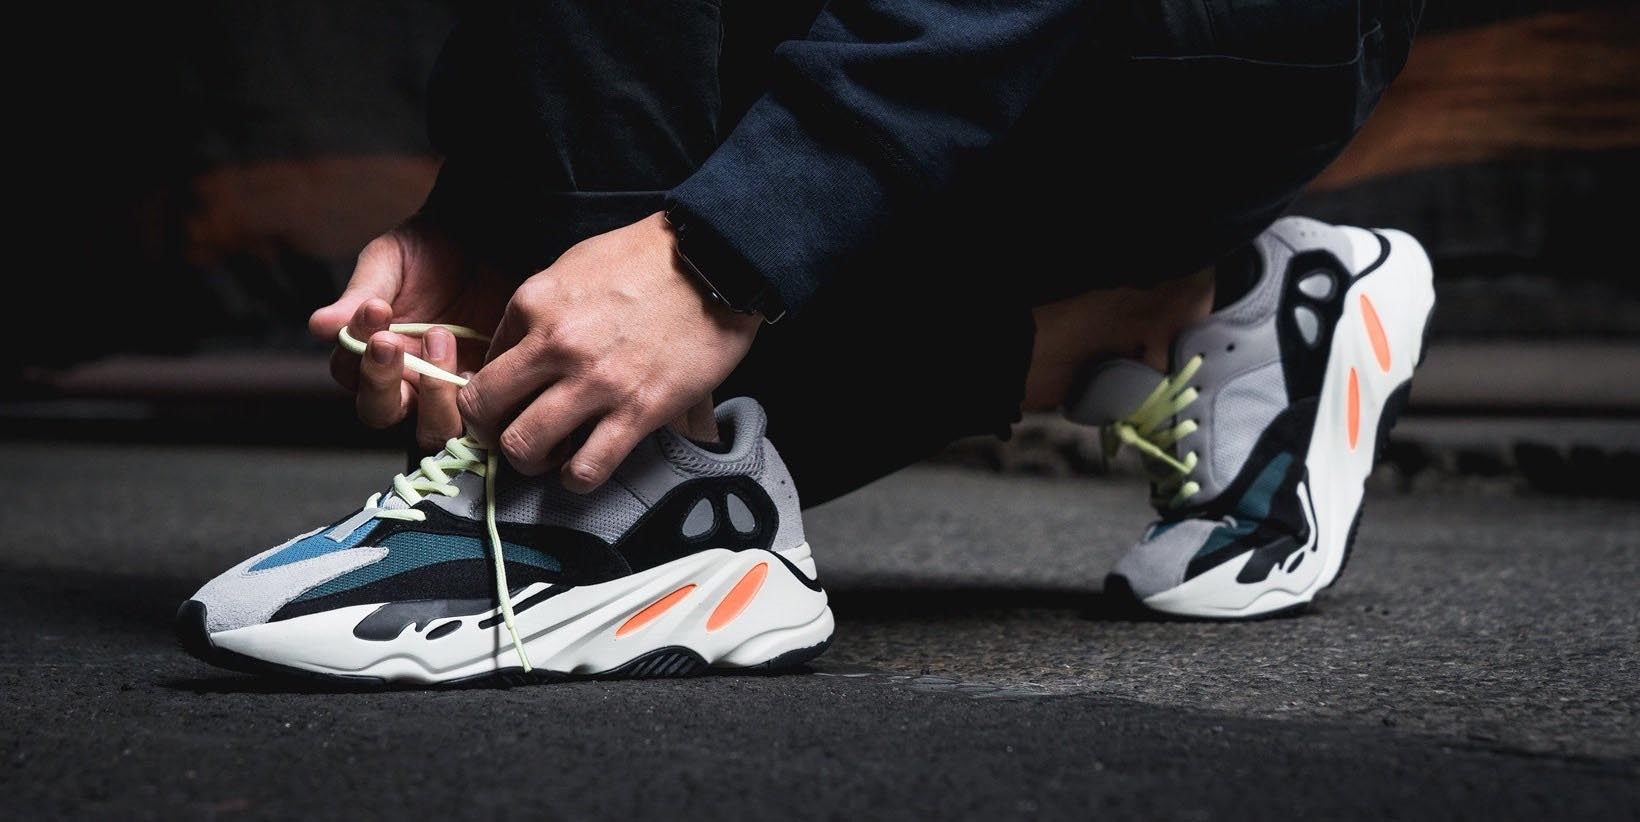 How Does The adidas Yeezy Boost 700 Wave Runner Fit? | The ...